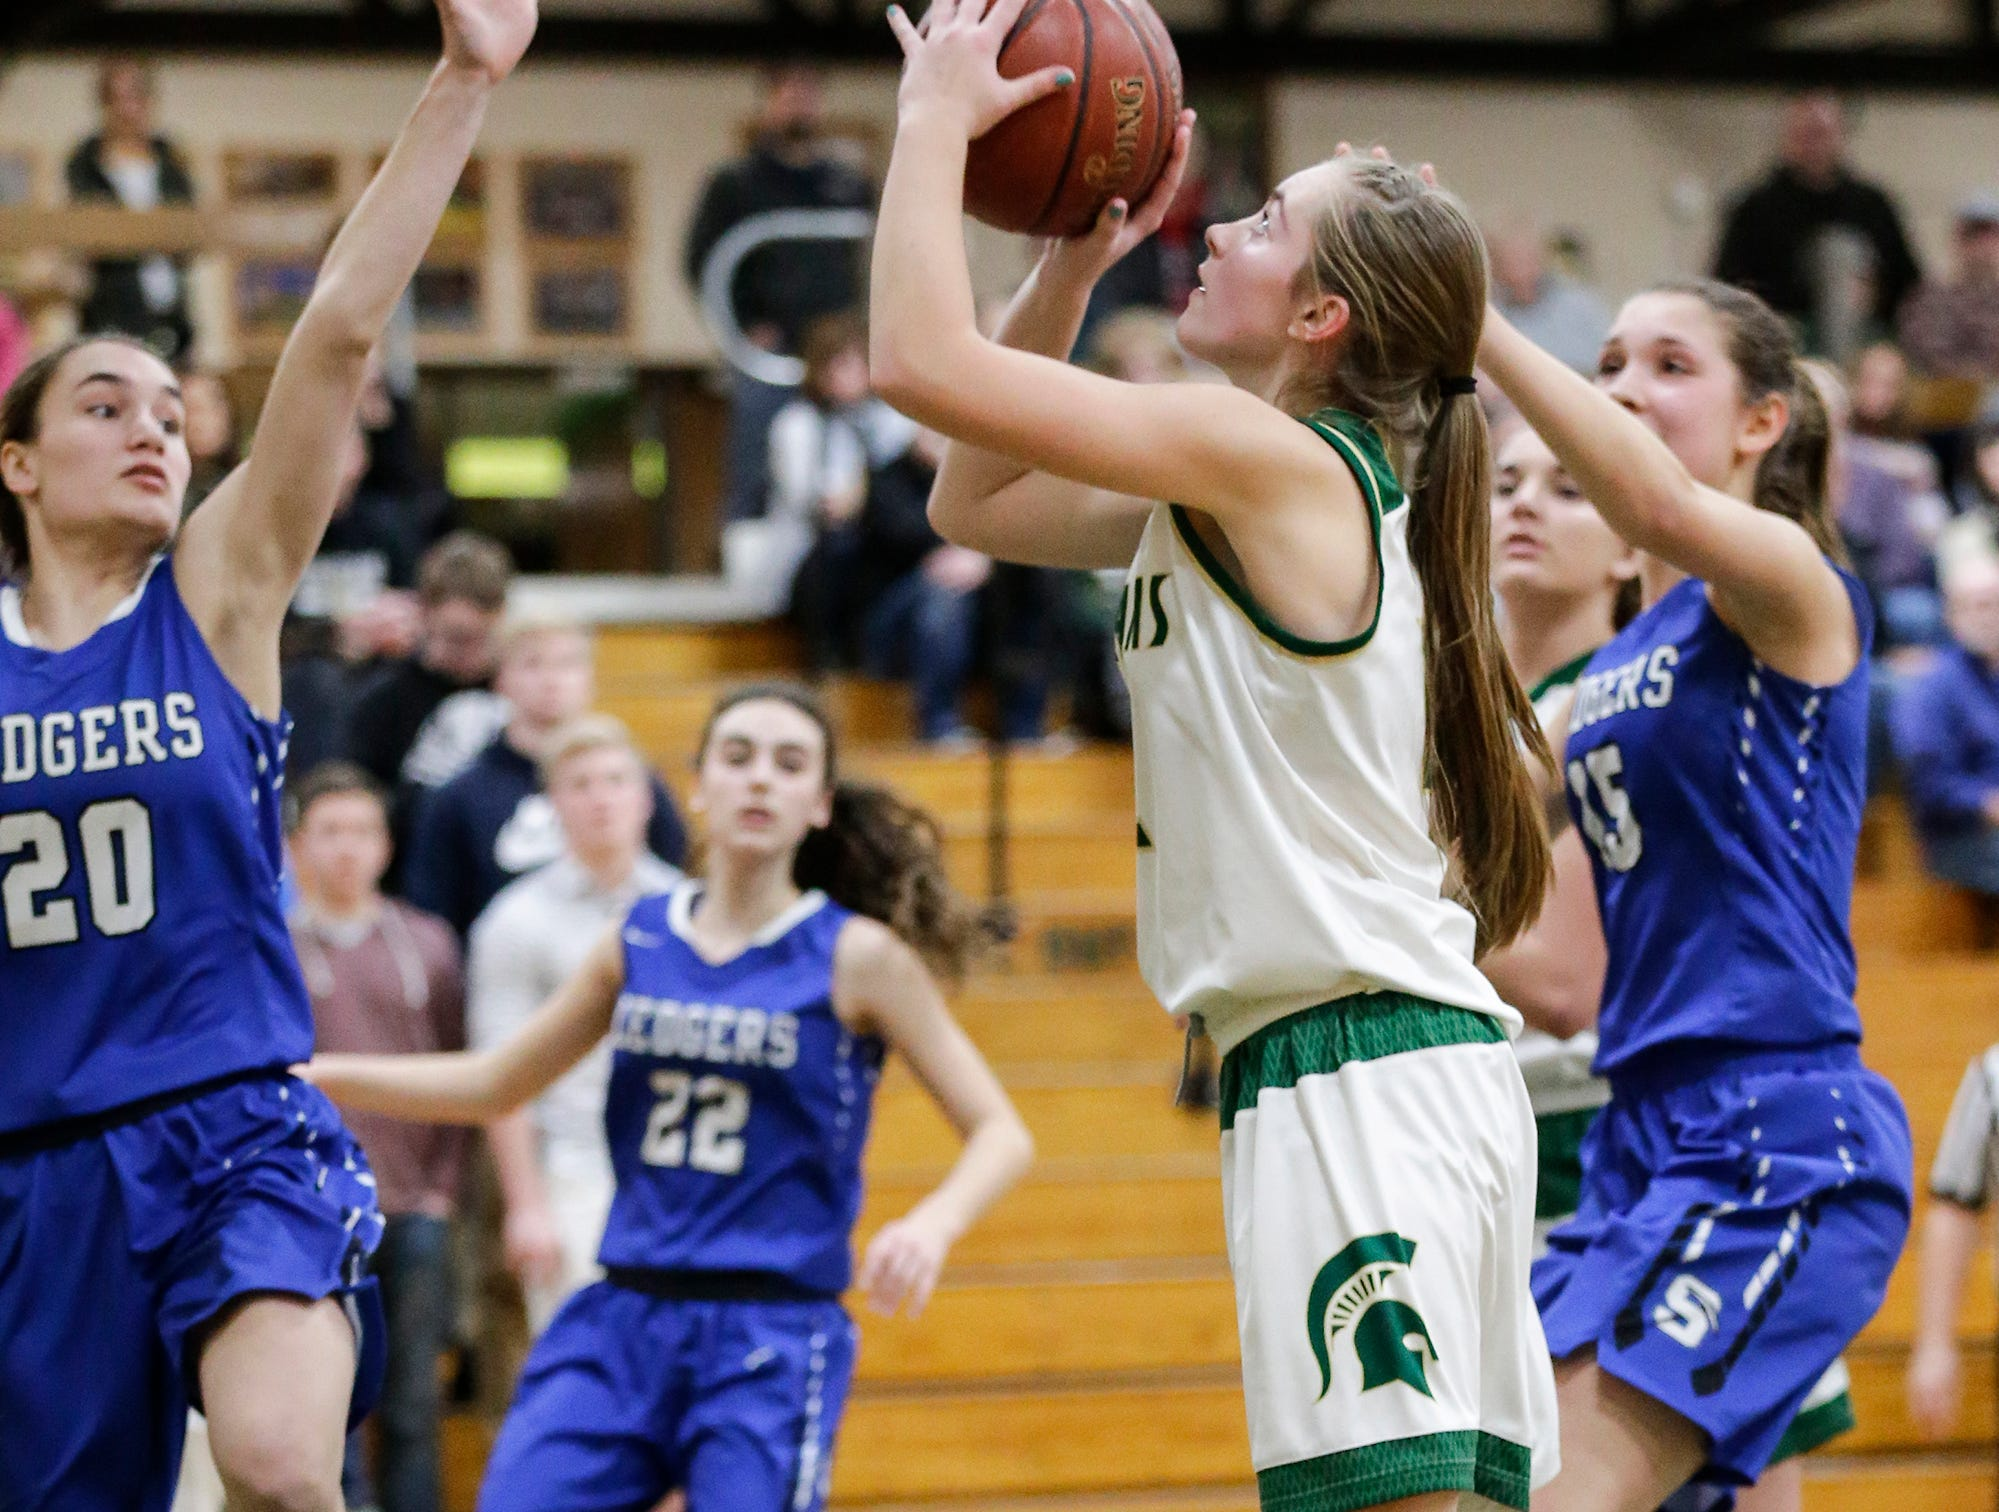 Laconia High School girls basketball's Alissa Dins shoots a basket against St. Mary's Springs Academy Tuesday, January 15, 2019 during their game in Rosendale. Laconia won the game 57-45. Doug Raflik/USA TODAY NETWORK-Wisconsin